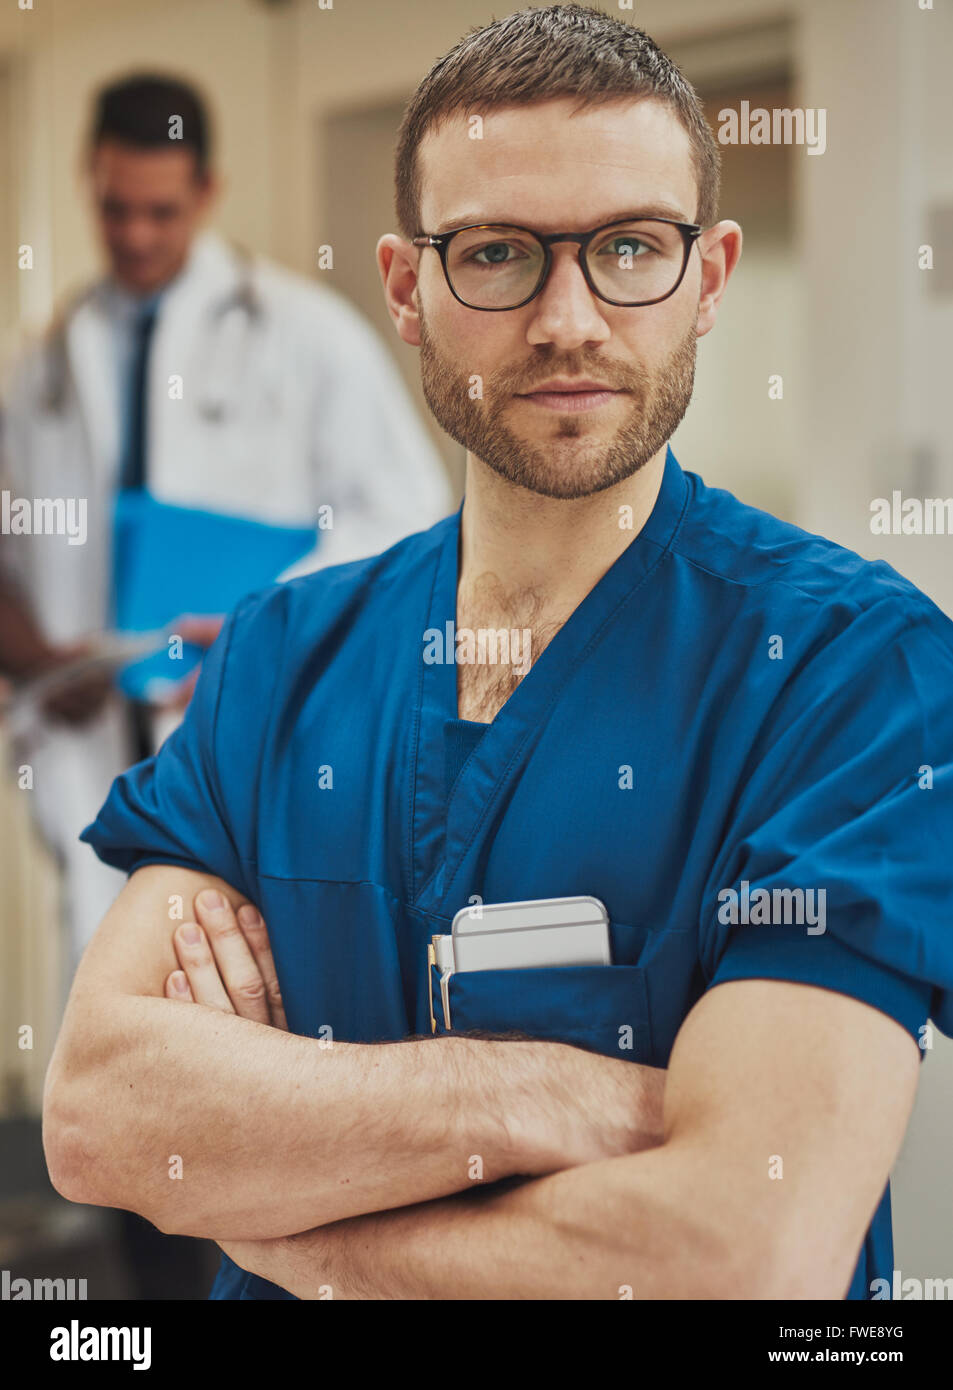 Serious confident young surgeon wearing glasses and surgical scrubs standing in a hospital with folded arms looking - Stock Image